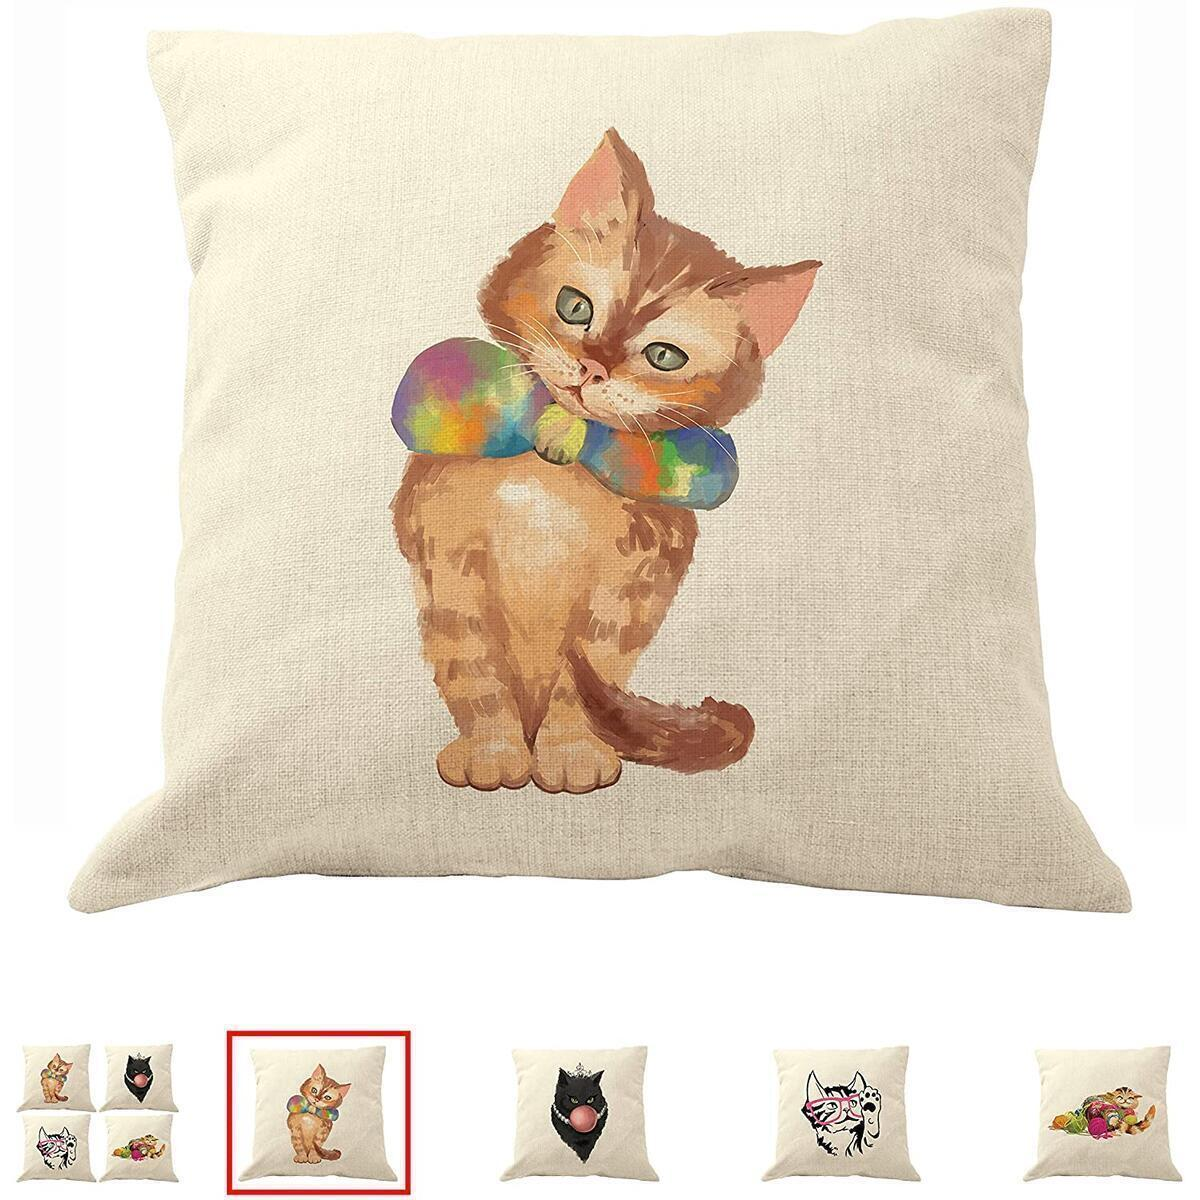 """DrupsCo - 18""""x18"""" Calico Cat Pillow Covers, Decorative Throw Pillows for Cat Lovers Made from Cotton Linen - Kitty Pillow Covers, Cat Decor Couch Pillows Cover"""